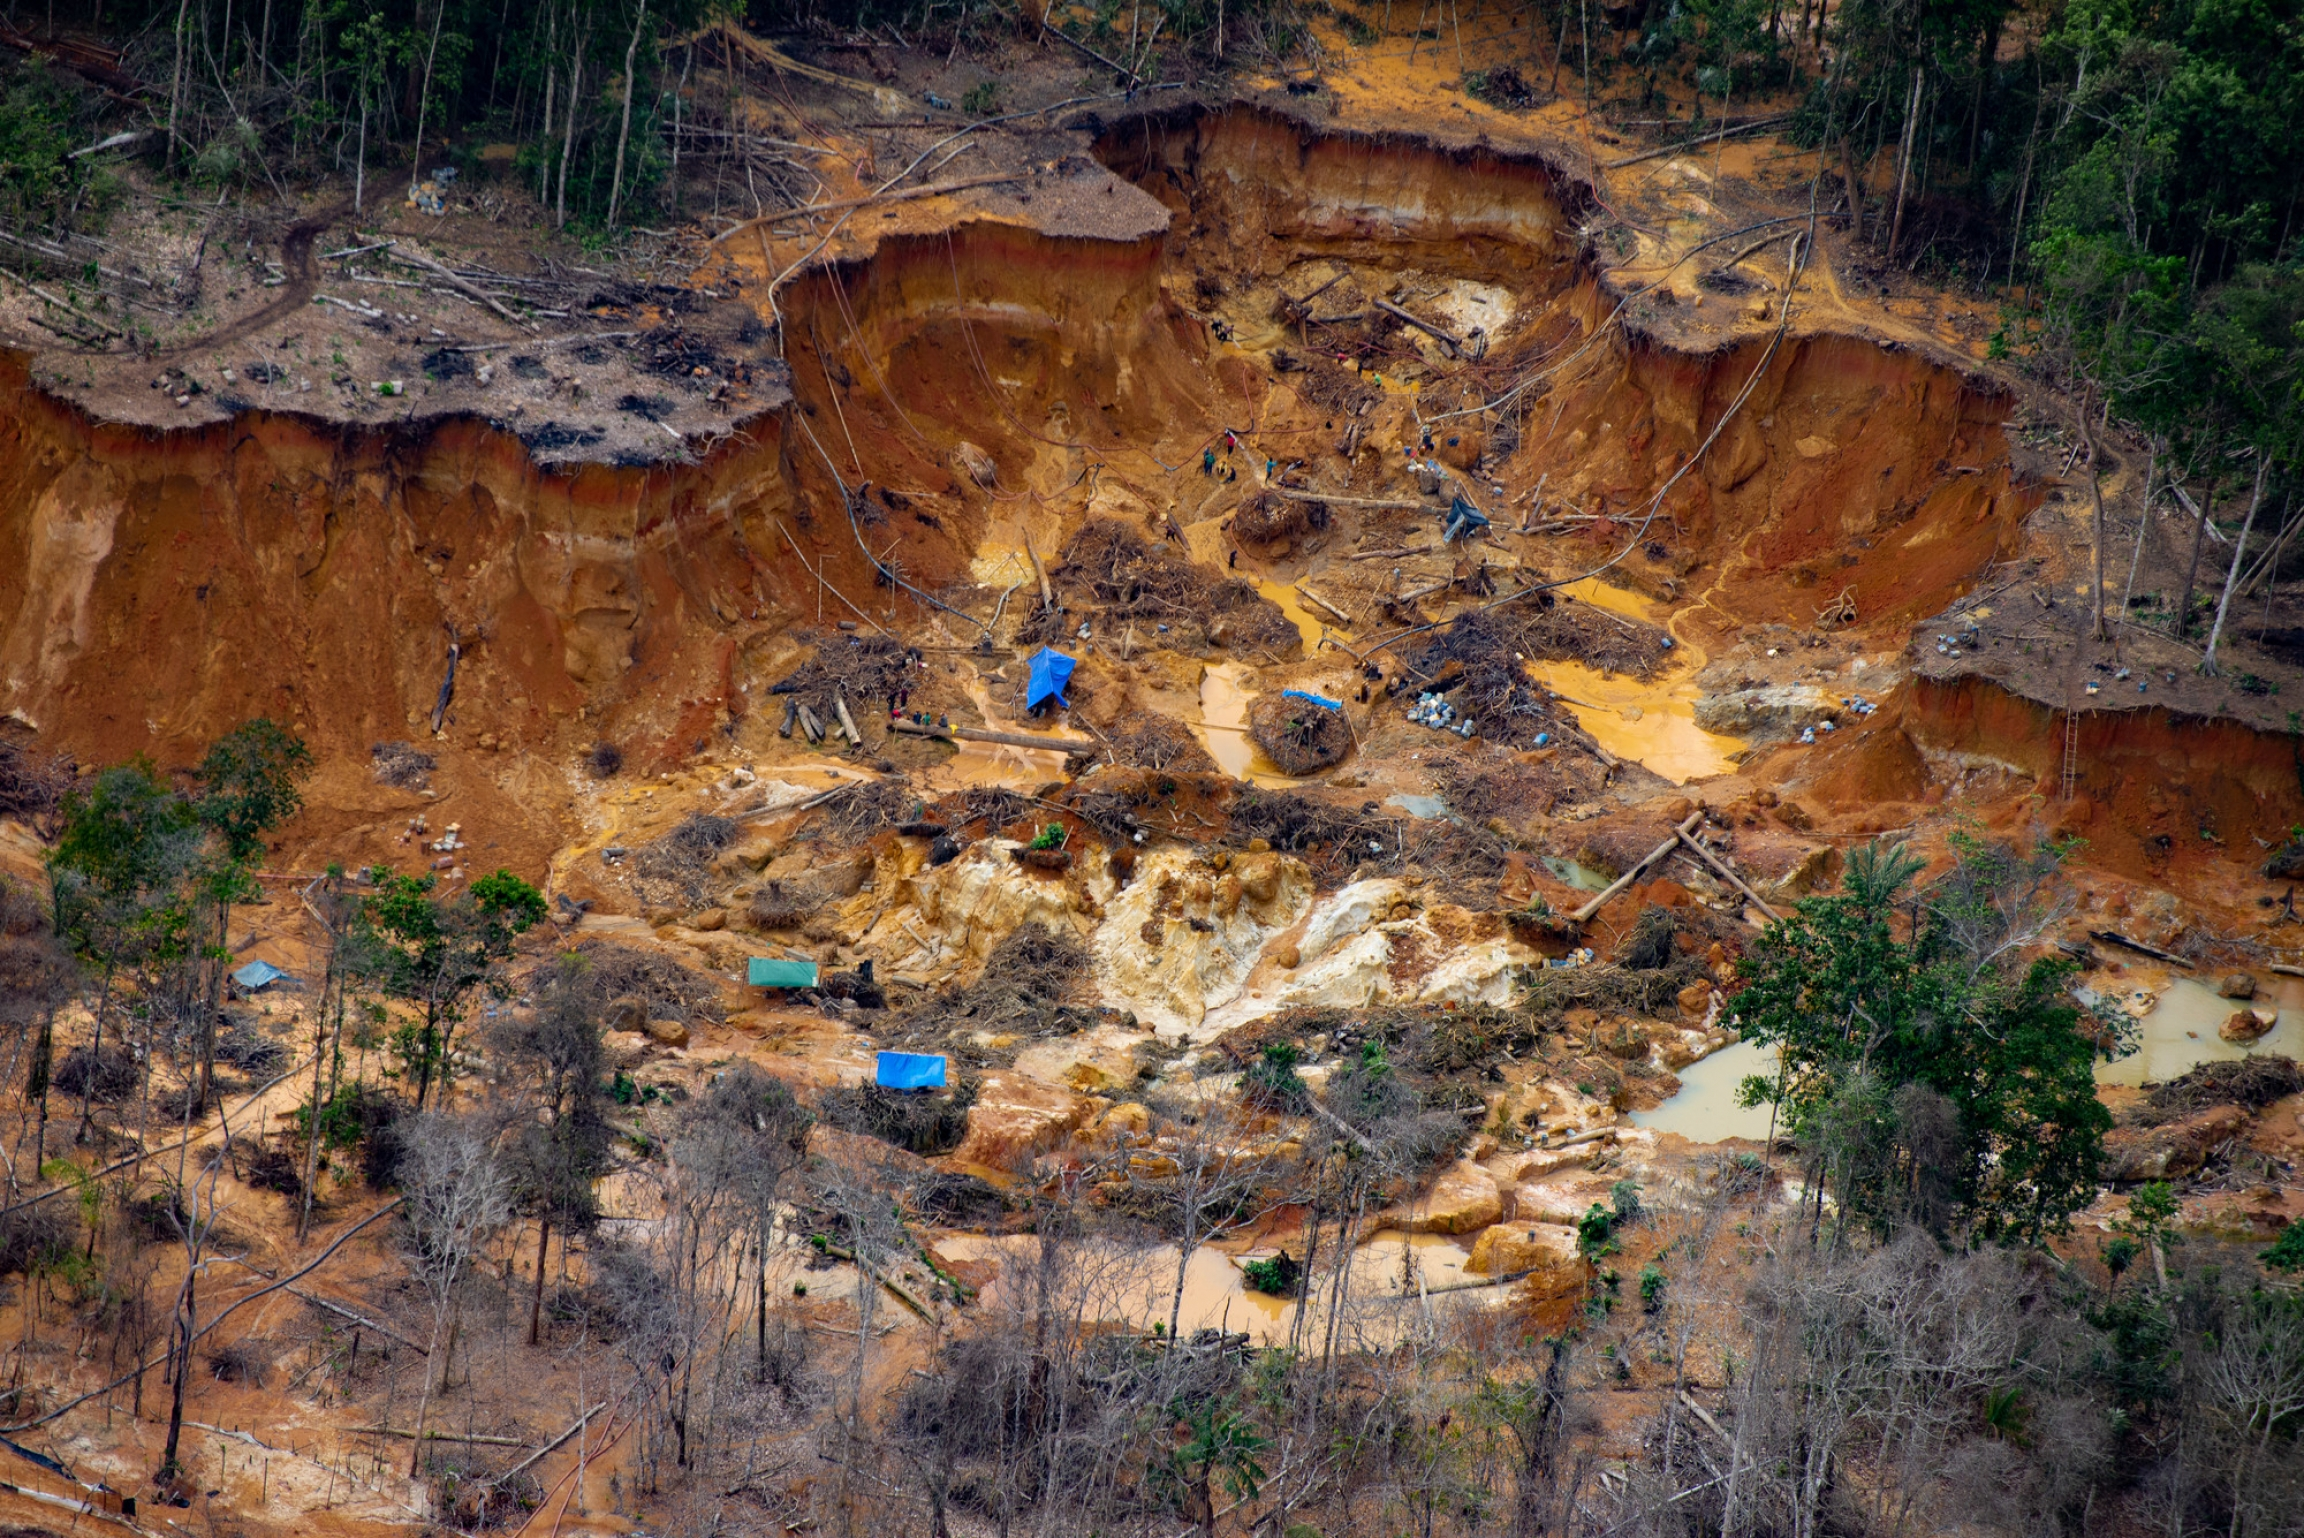 An illegal mining site in the Uraricoera River area of Yanomami land.